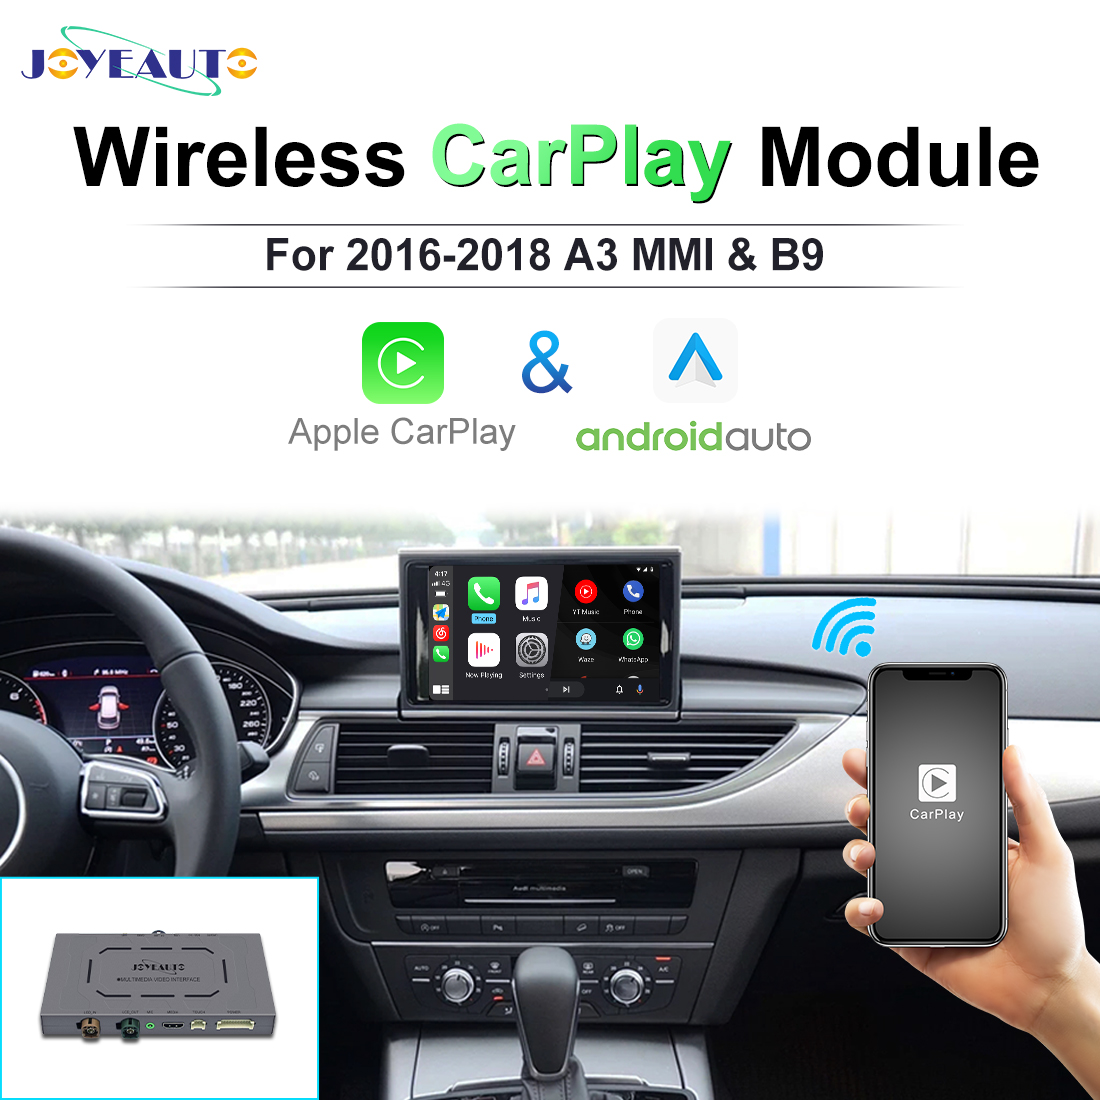 JoyeAuto Wireless Apple Carplay For Audi A3 MMI2010 2012 2013 2014 2015 A4 A5 Q7 Q2 2016 2017 2018 Android Auto Car play Adapter